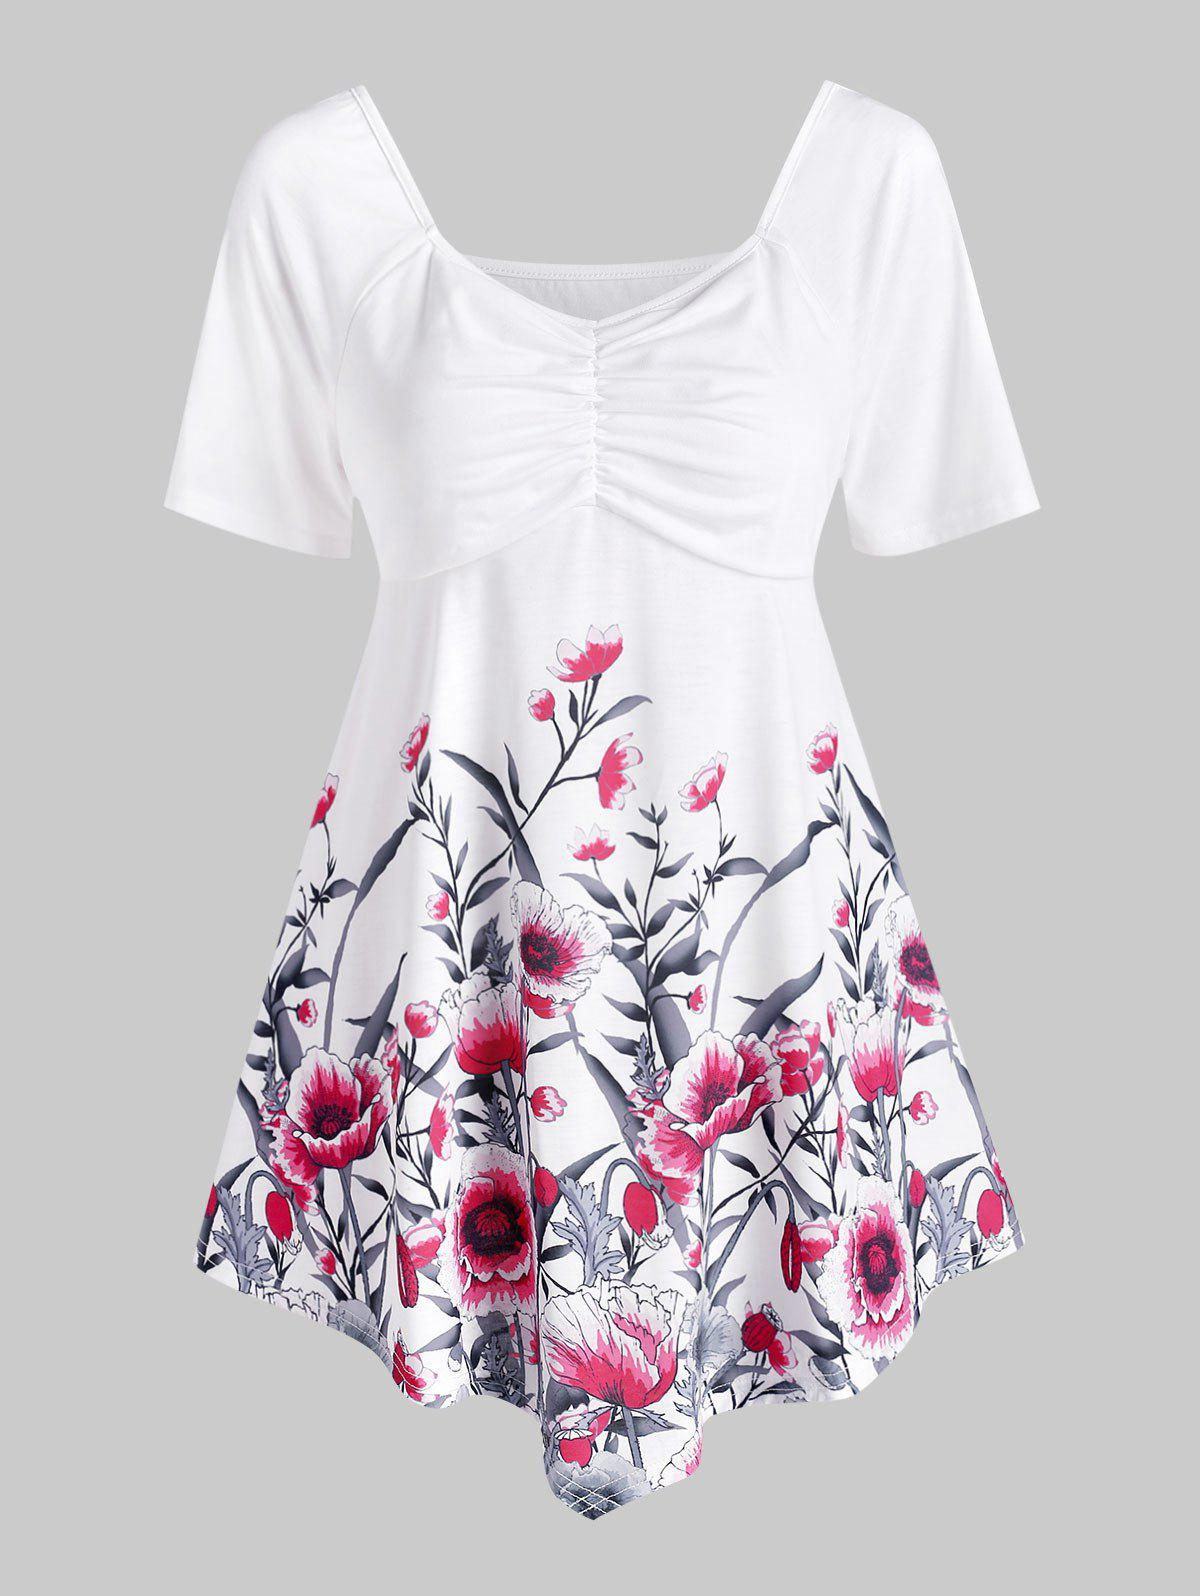 Ruched Floral Tunic Top - WHITE S